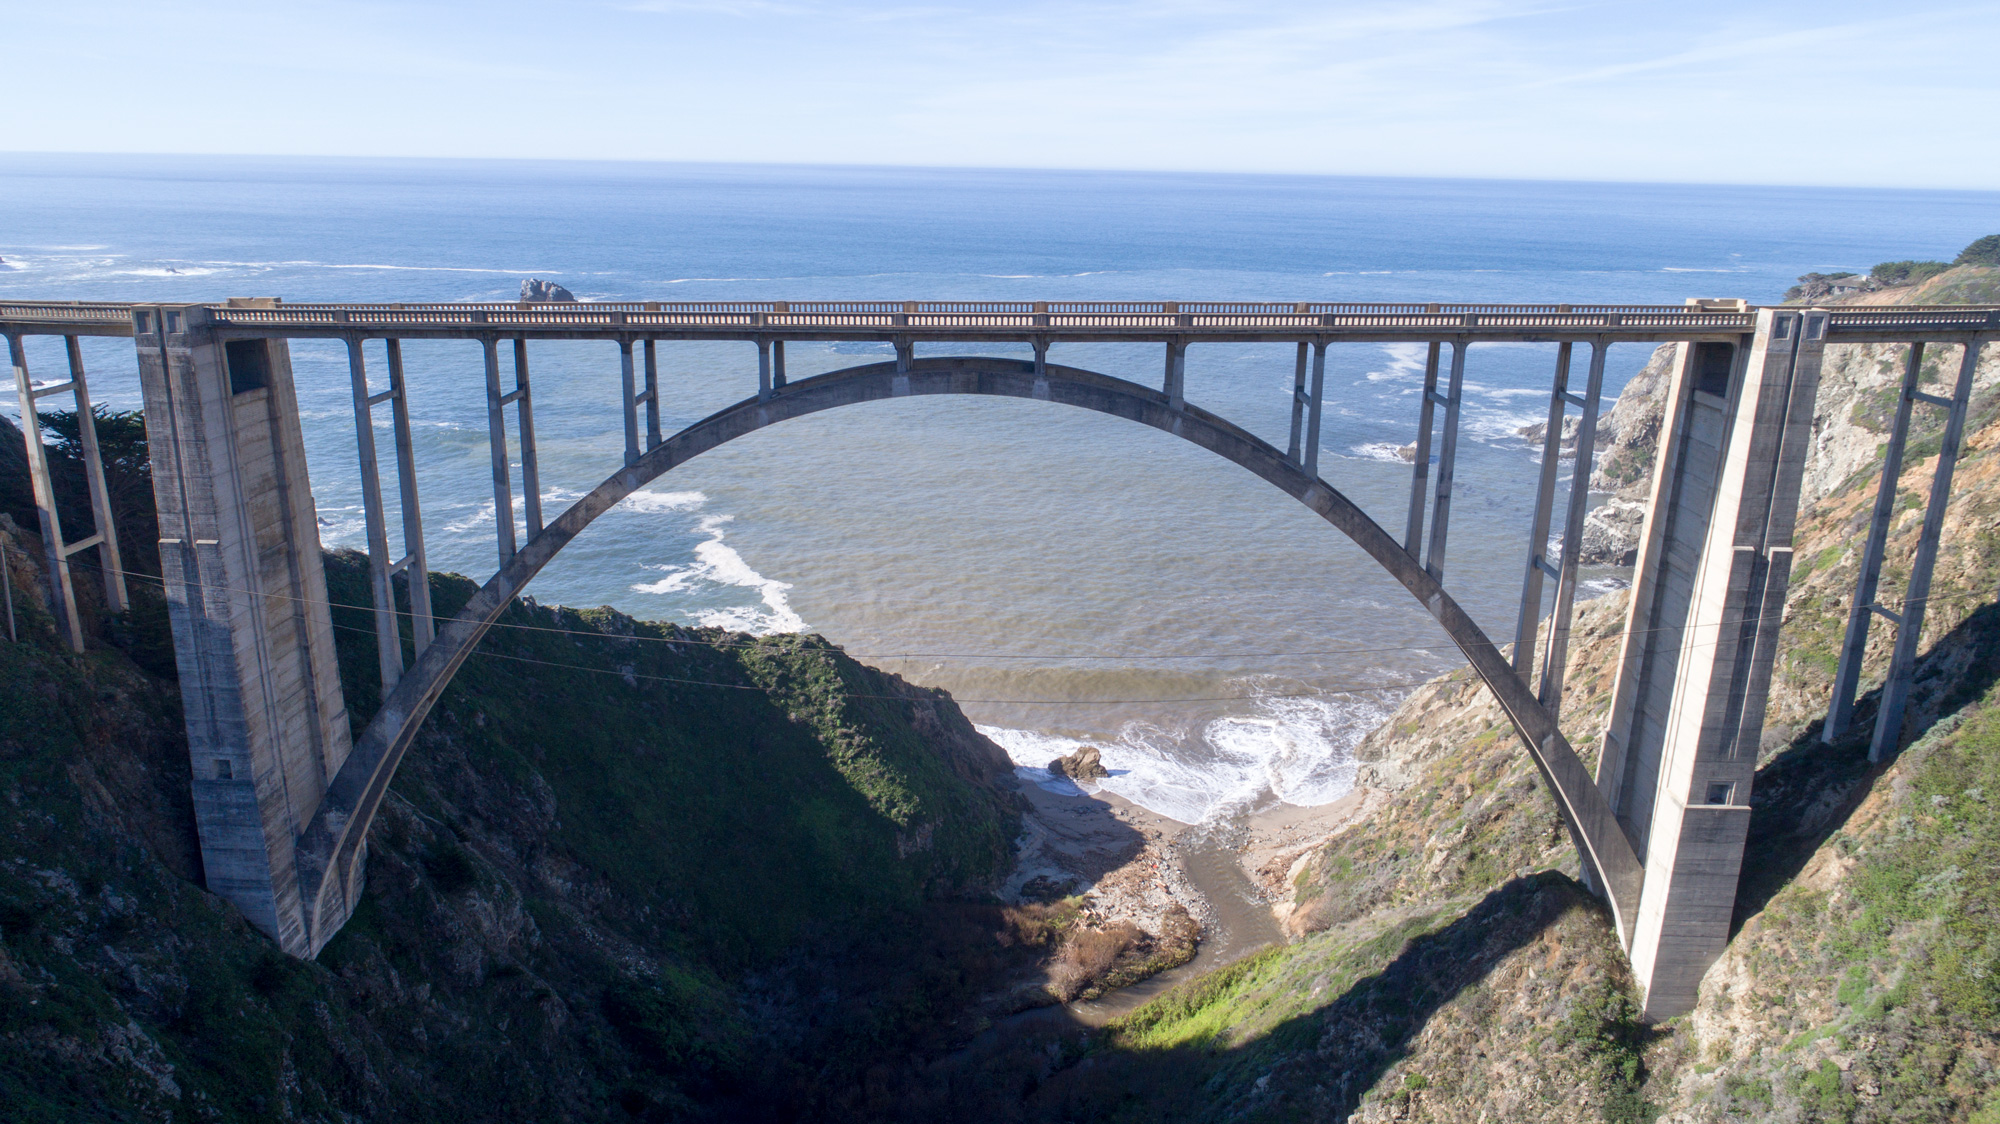 Bixby-Bridge-medium-2000px.jpg